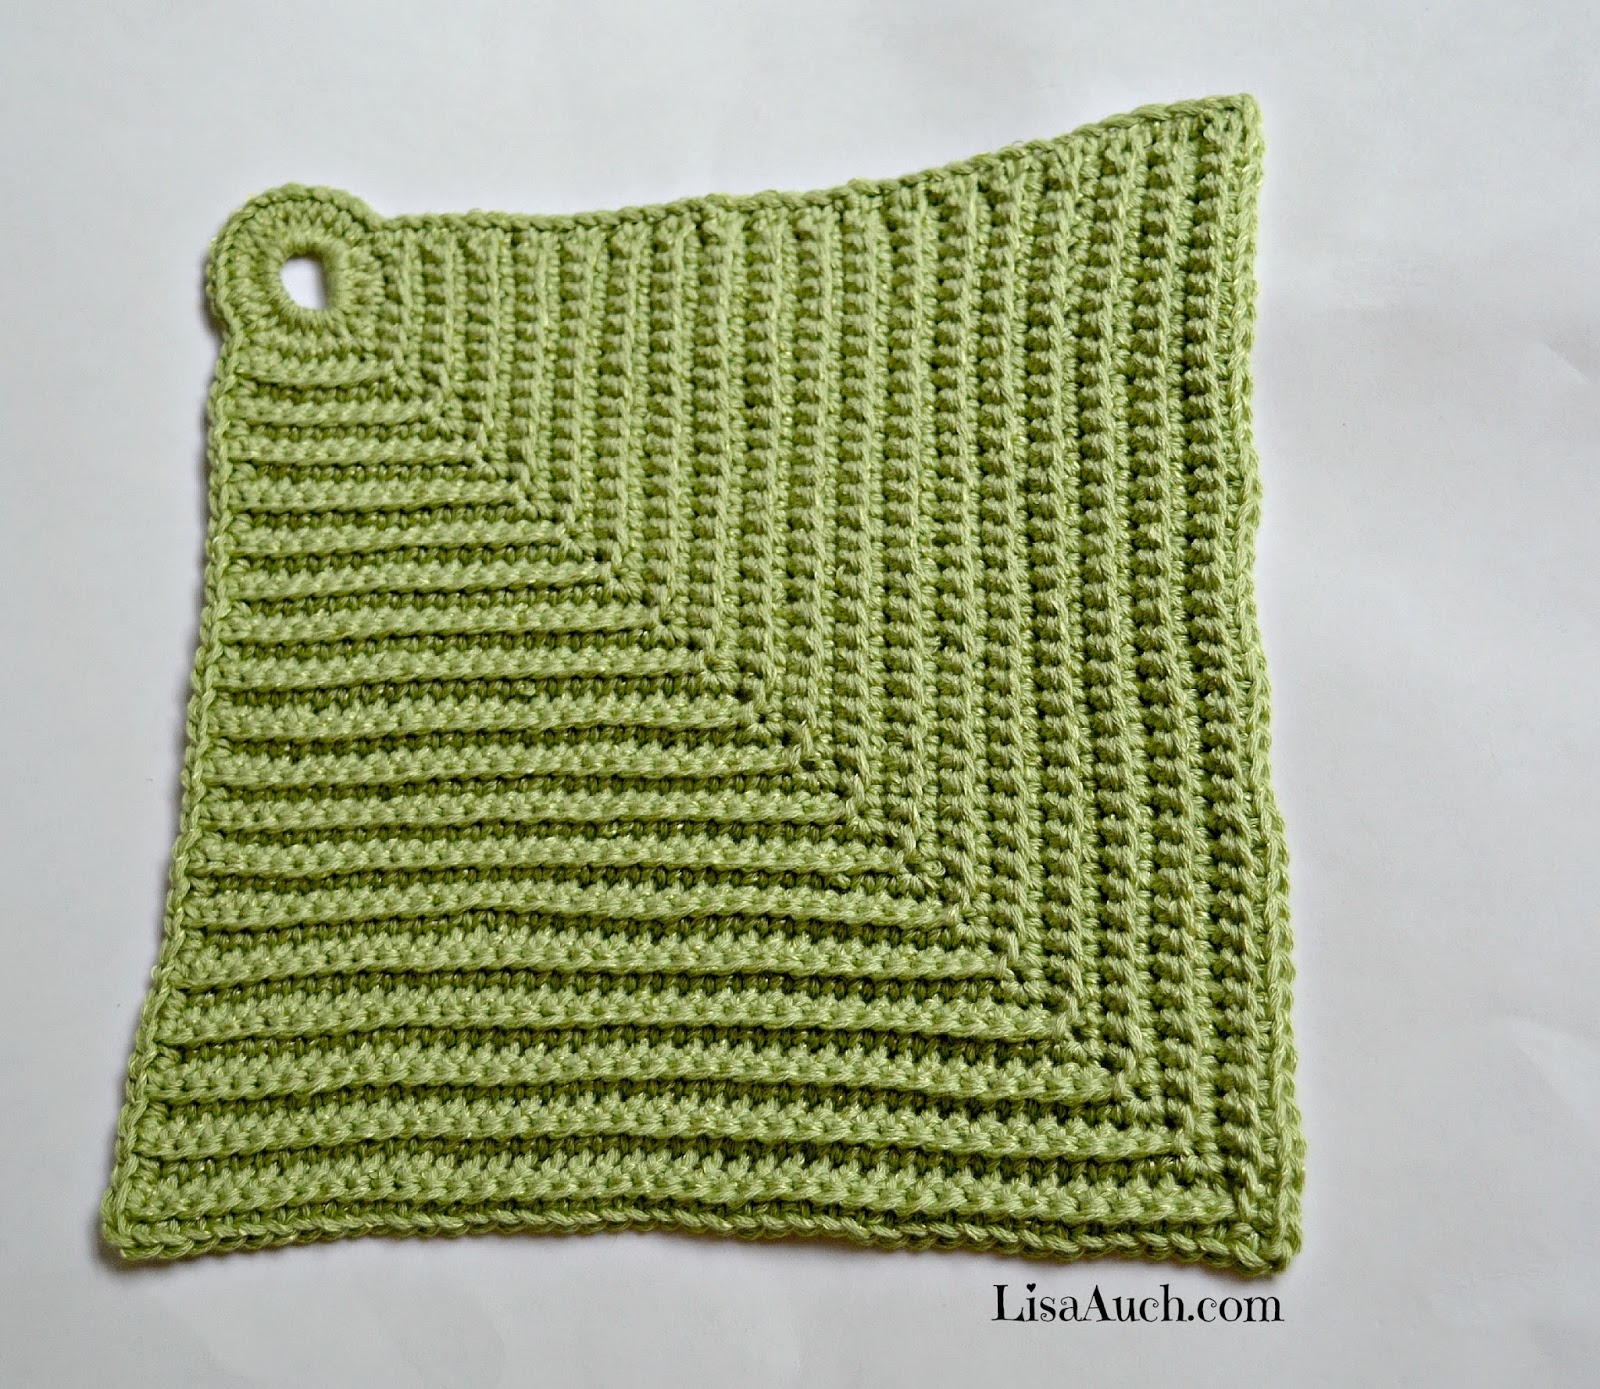 Free Crochet Patterns and Designs by LisaAuch: Free Easy ...